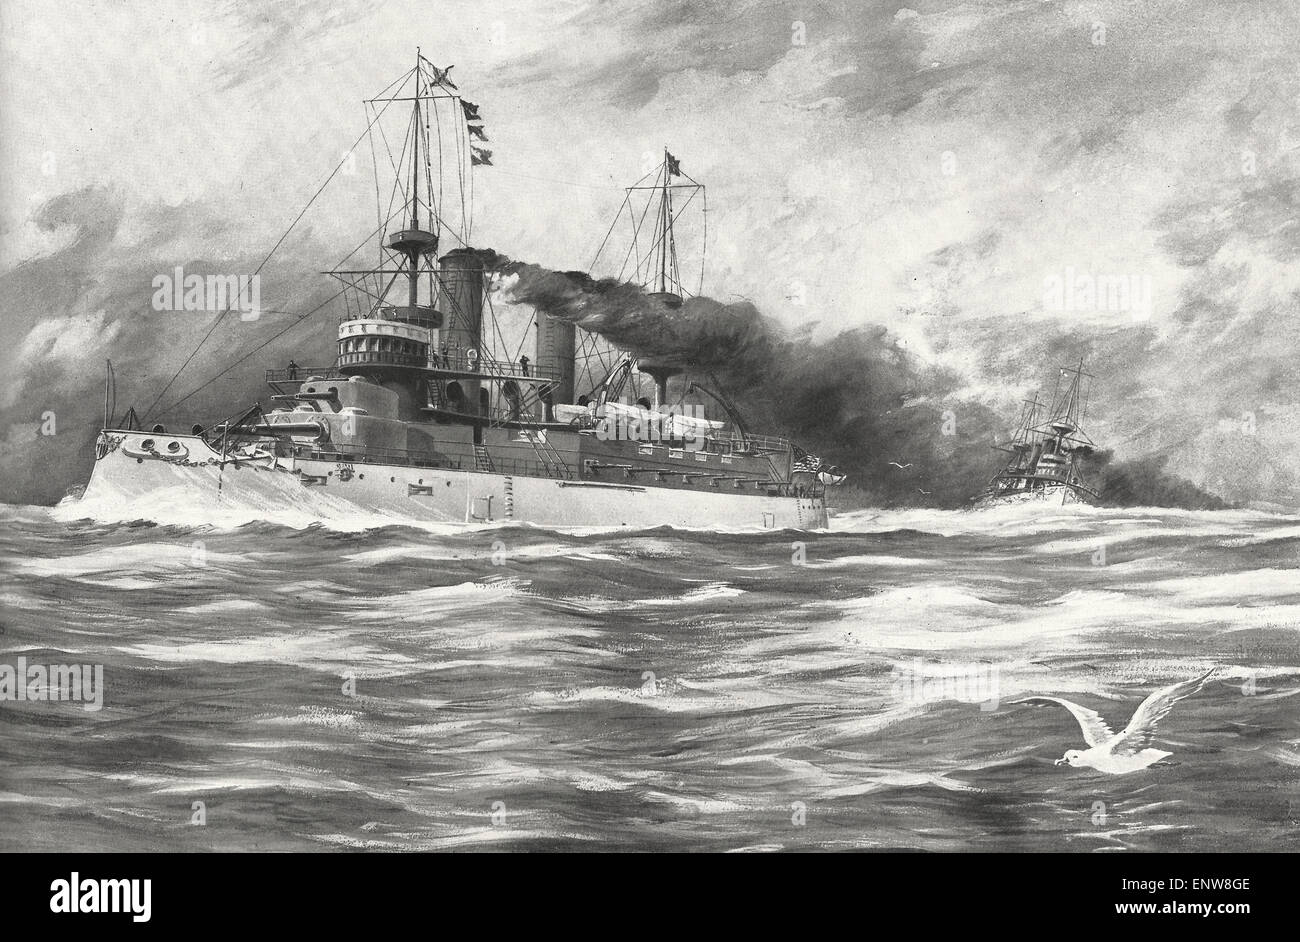 The United States Battleships USS Kearsage and USS Kentucky during the Spanish American War - Stock Image